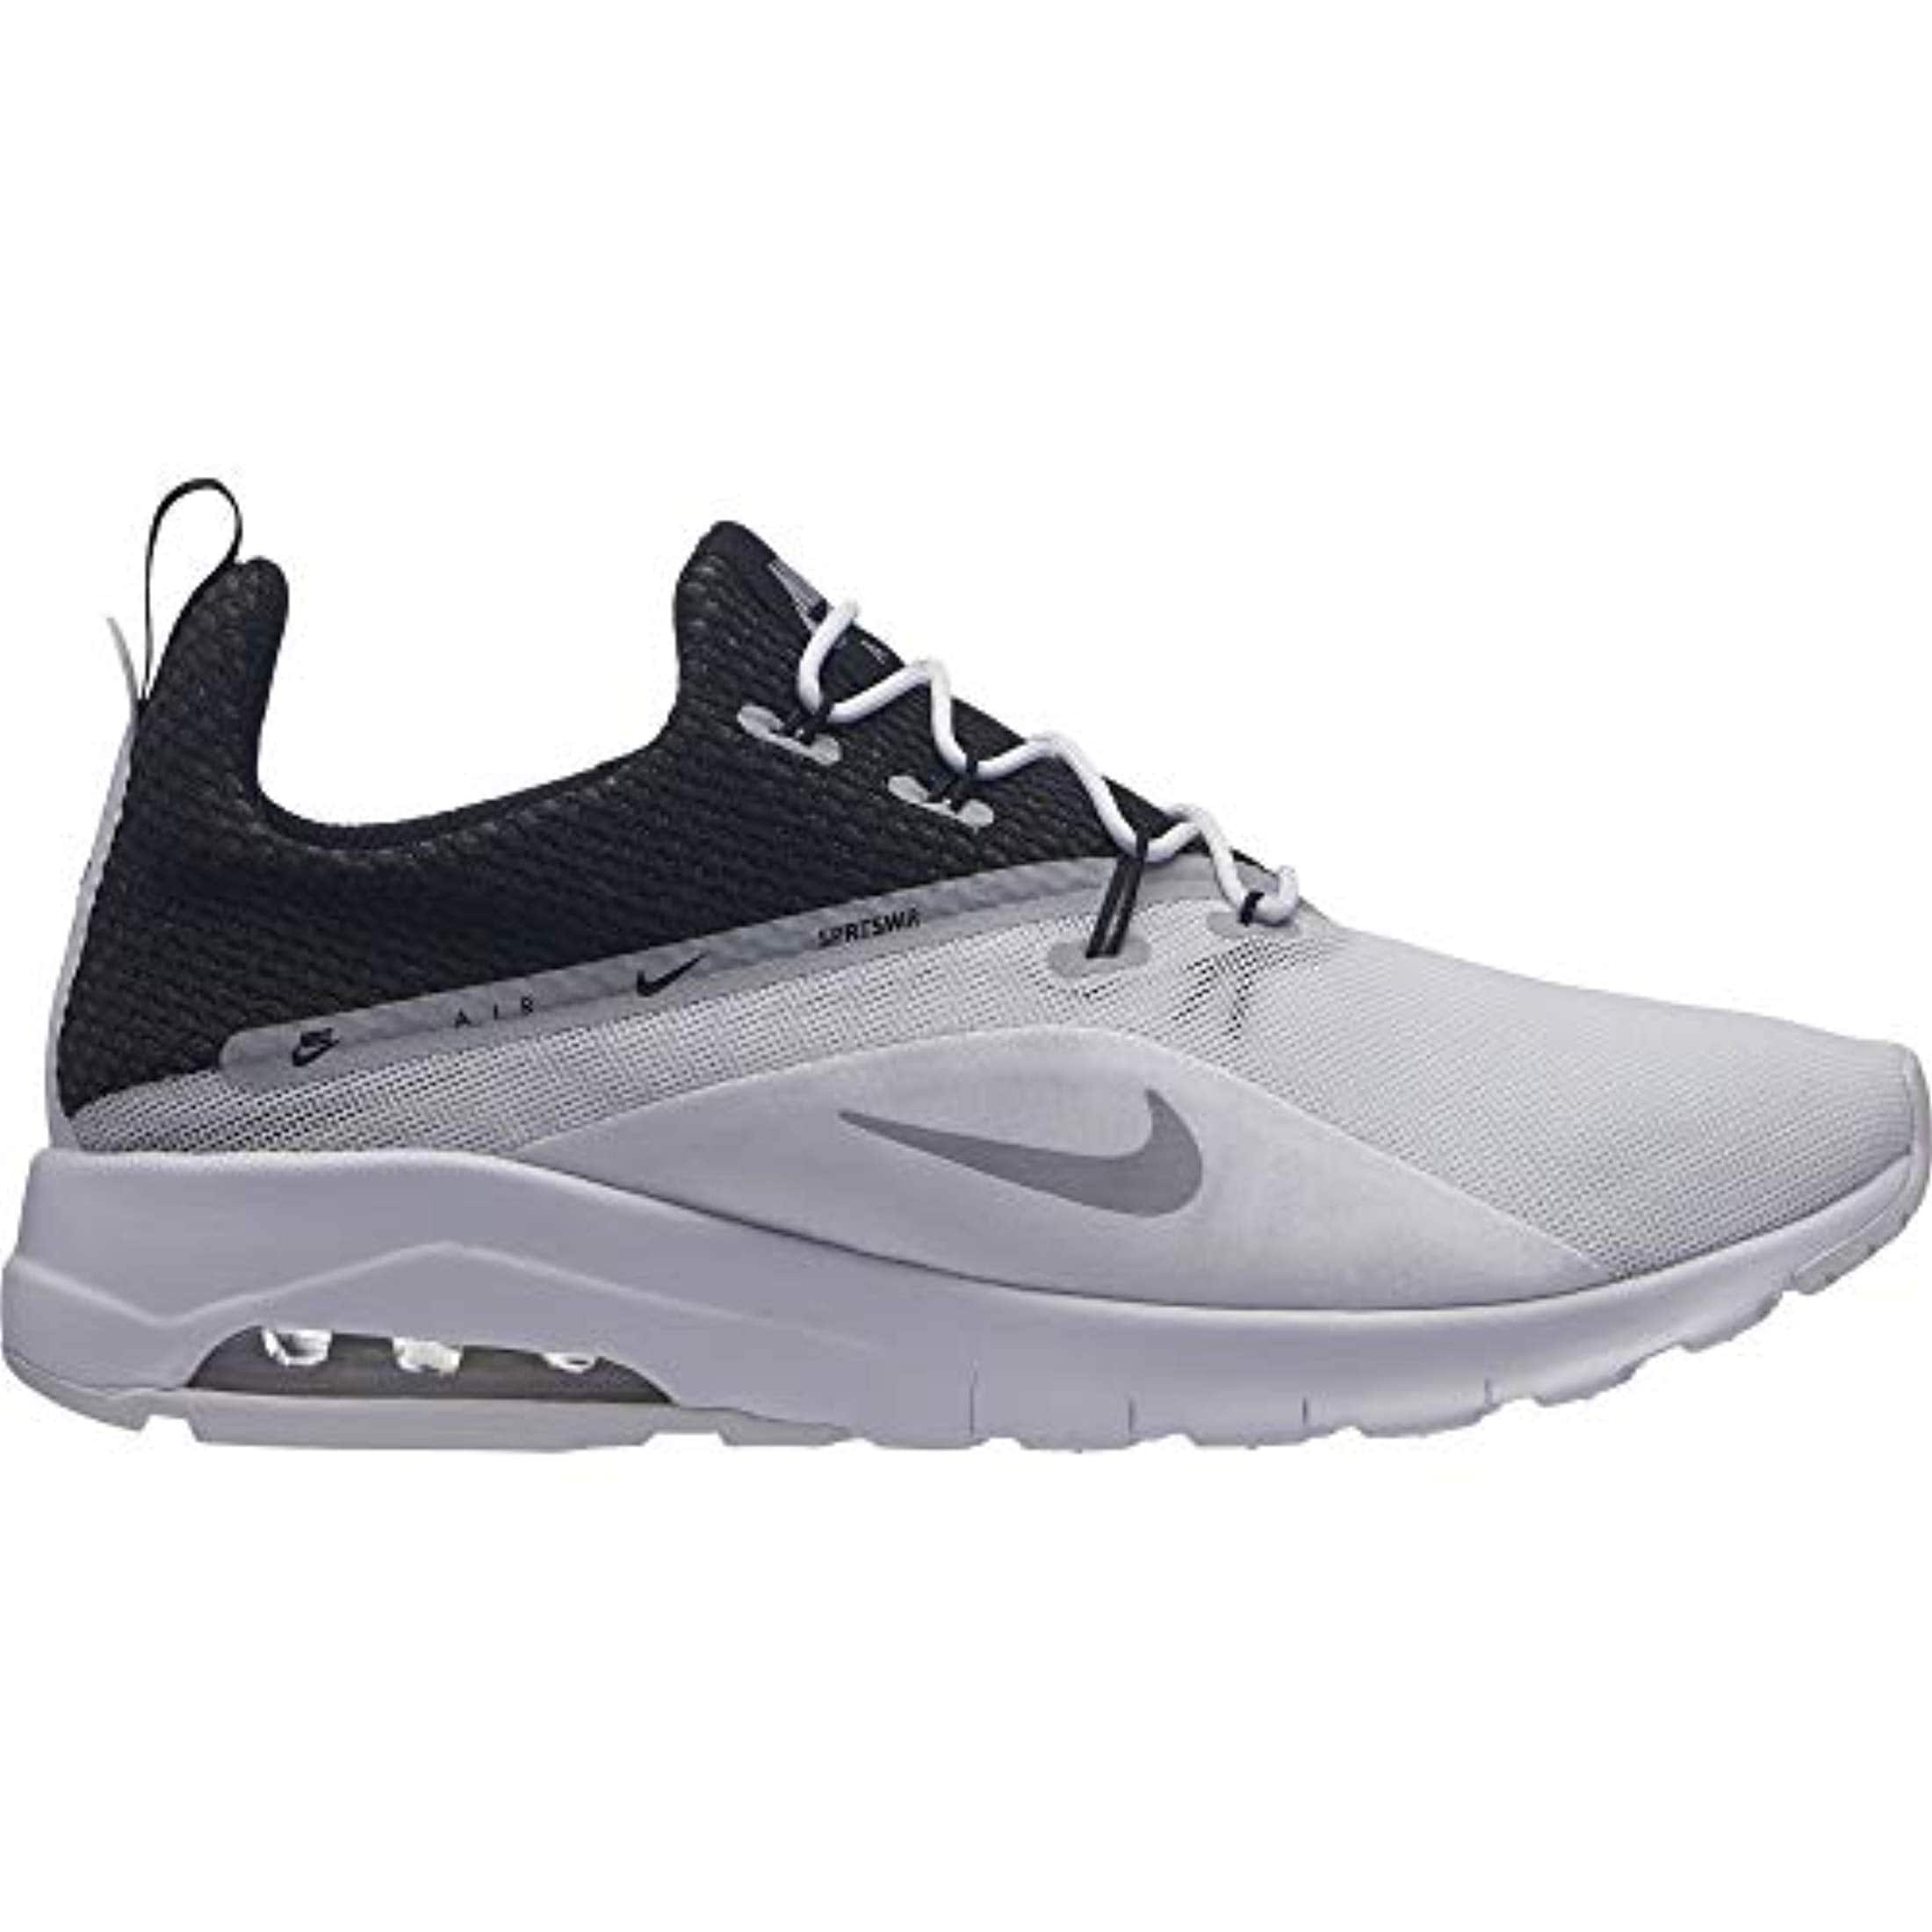 0c41e6c6cd8d Shop Nike Men s Air Max Motion Racer 2 Running Shoe White Wolf Grey Black -  Free Shipping Today - Overstock - 27121500